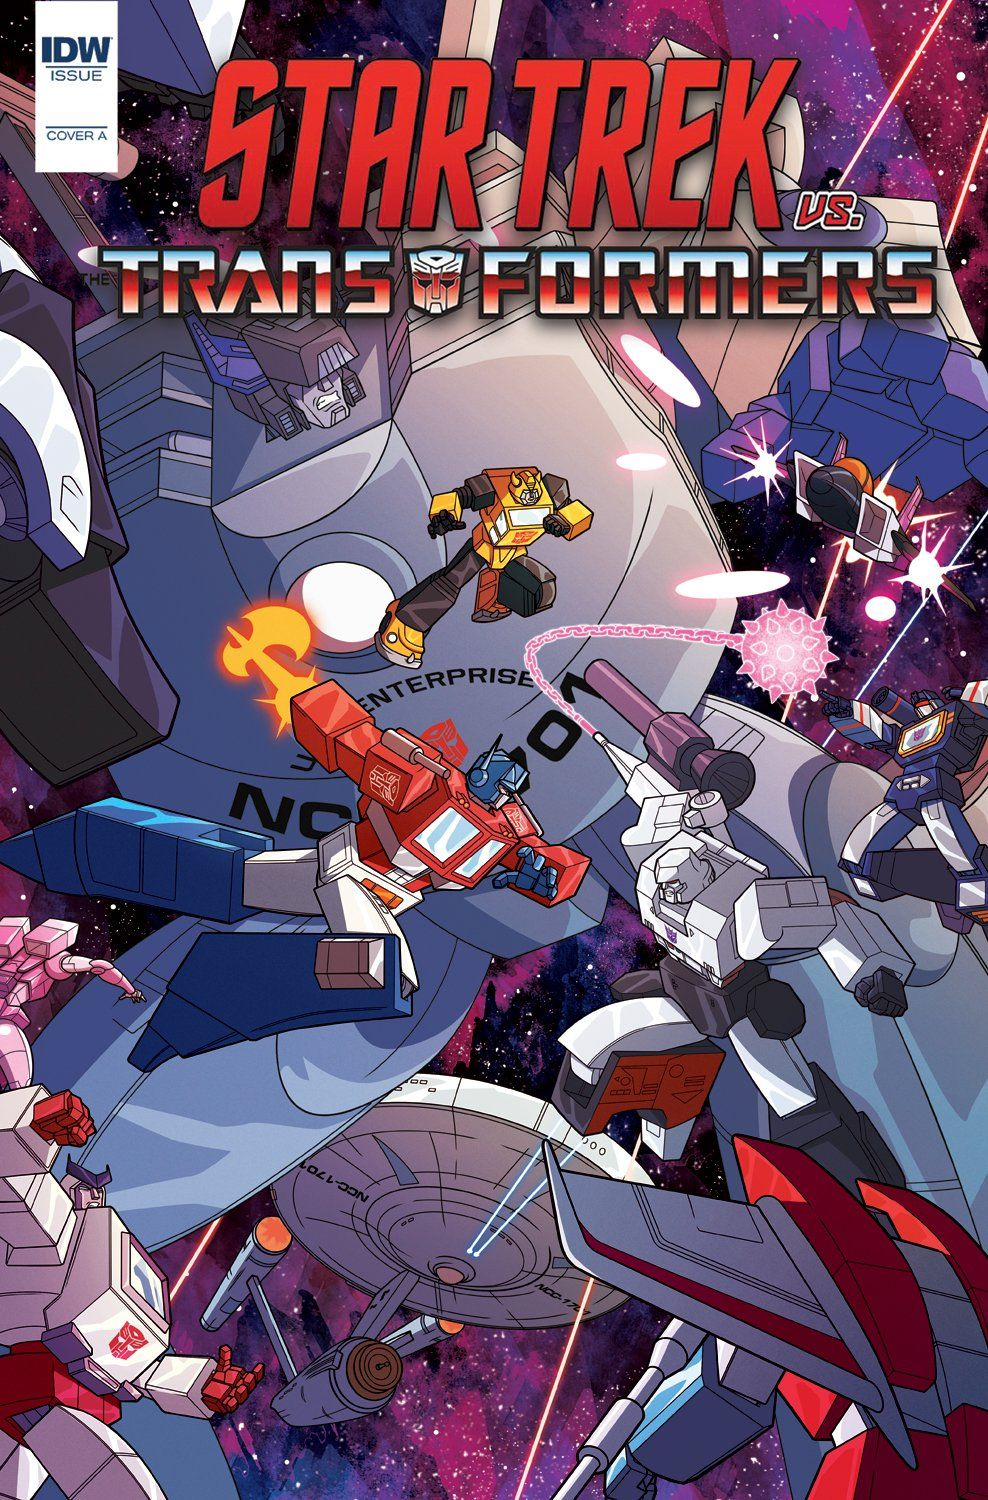 Cover For Star Trek Vs Transformers No 5 By Artist Phil Murphy Crashtesterx From Idwpublishing Star Trek Art Transformers Star Trek